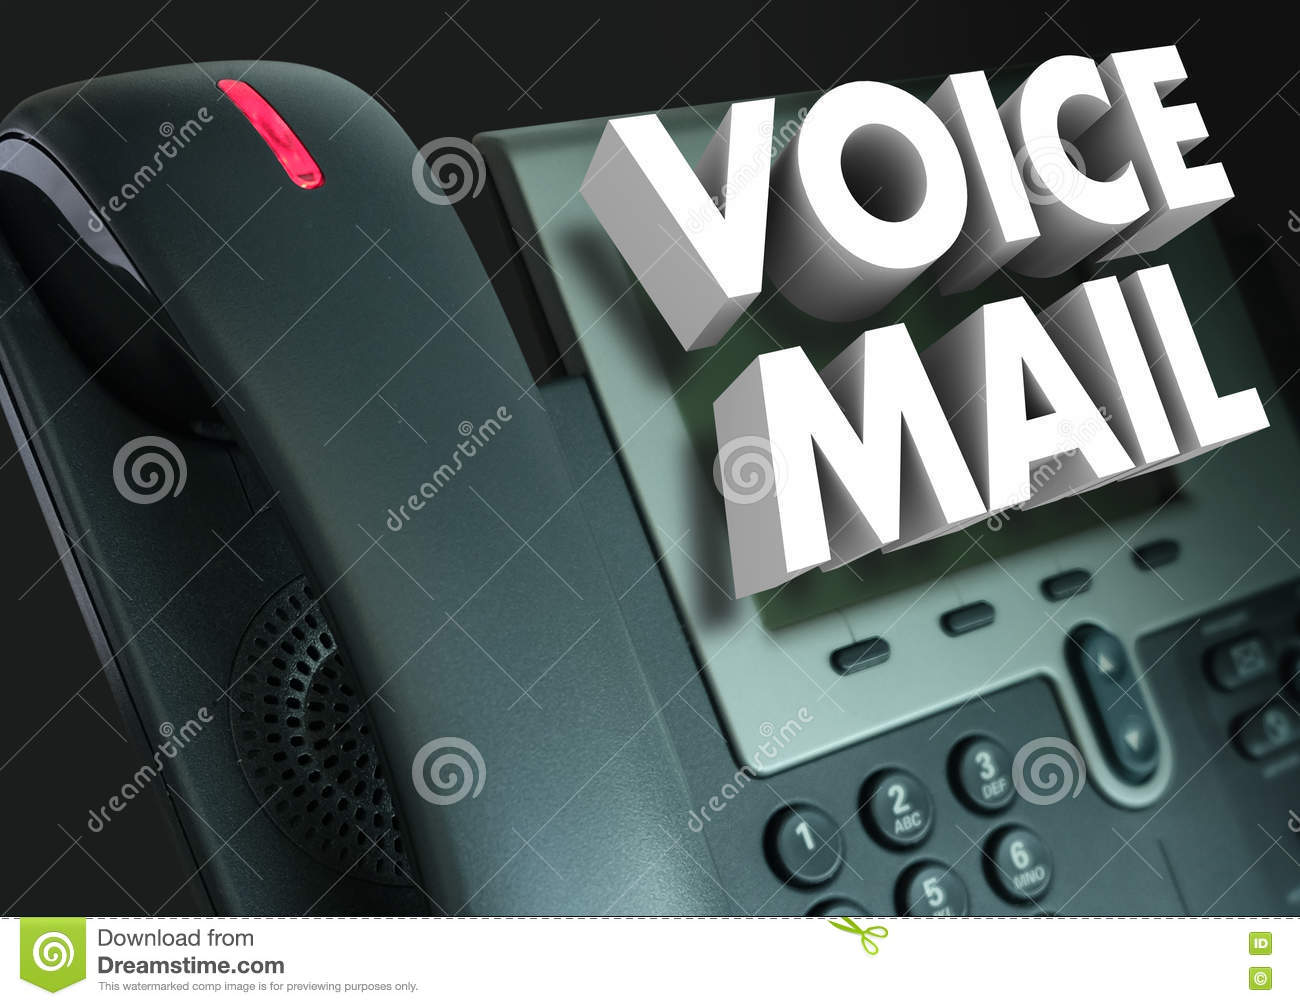 Voice mail 3d words telephone recorded message stock illustration voice mail 3d words telephone recorded message kristyandbryce Choice Image